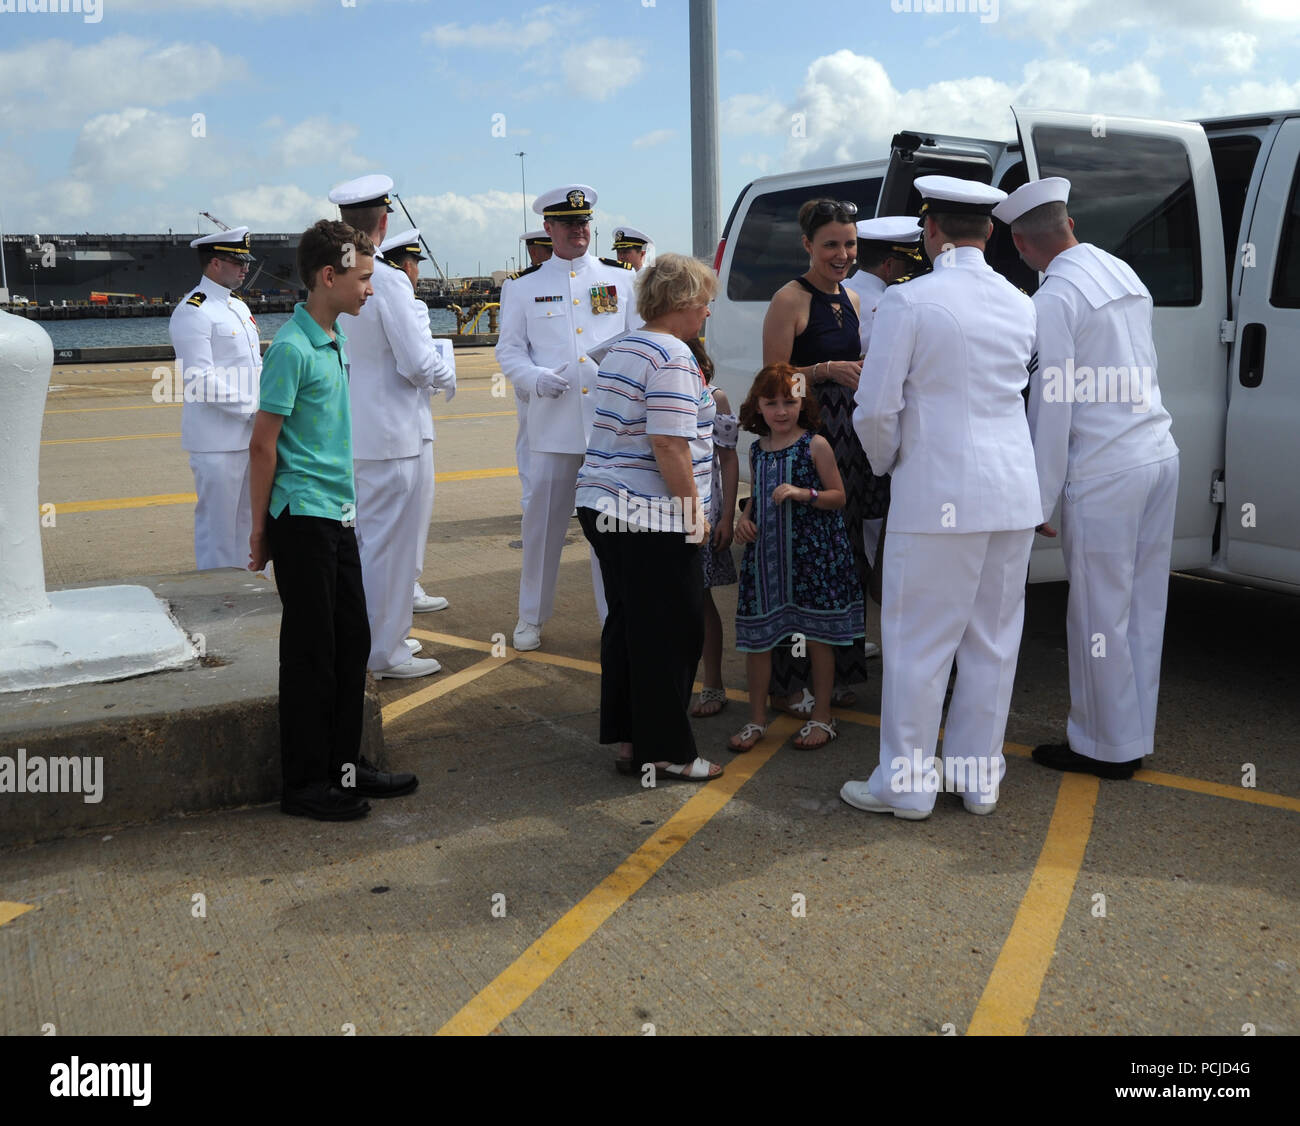 NORFOLK, Va. (Aug. 1, 2018) Family members are greeted by Sailors as they arrive to the Submarine Squadron Six change of command aboard the Virginia-class attack submarine USS Washington (SSN 787) in Norfolk, Va. Capt. Martin Muckian relieved Capt. Carl Hartsfield as Commander, Submarine Squadron Six.  (U.S. Navy photo by Chief Mass Communication Specialist Darryl Wood/Released) - Stock Image